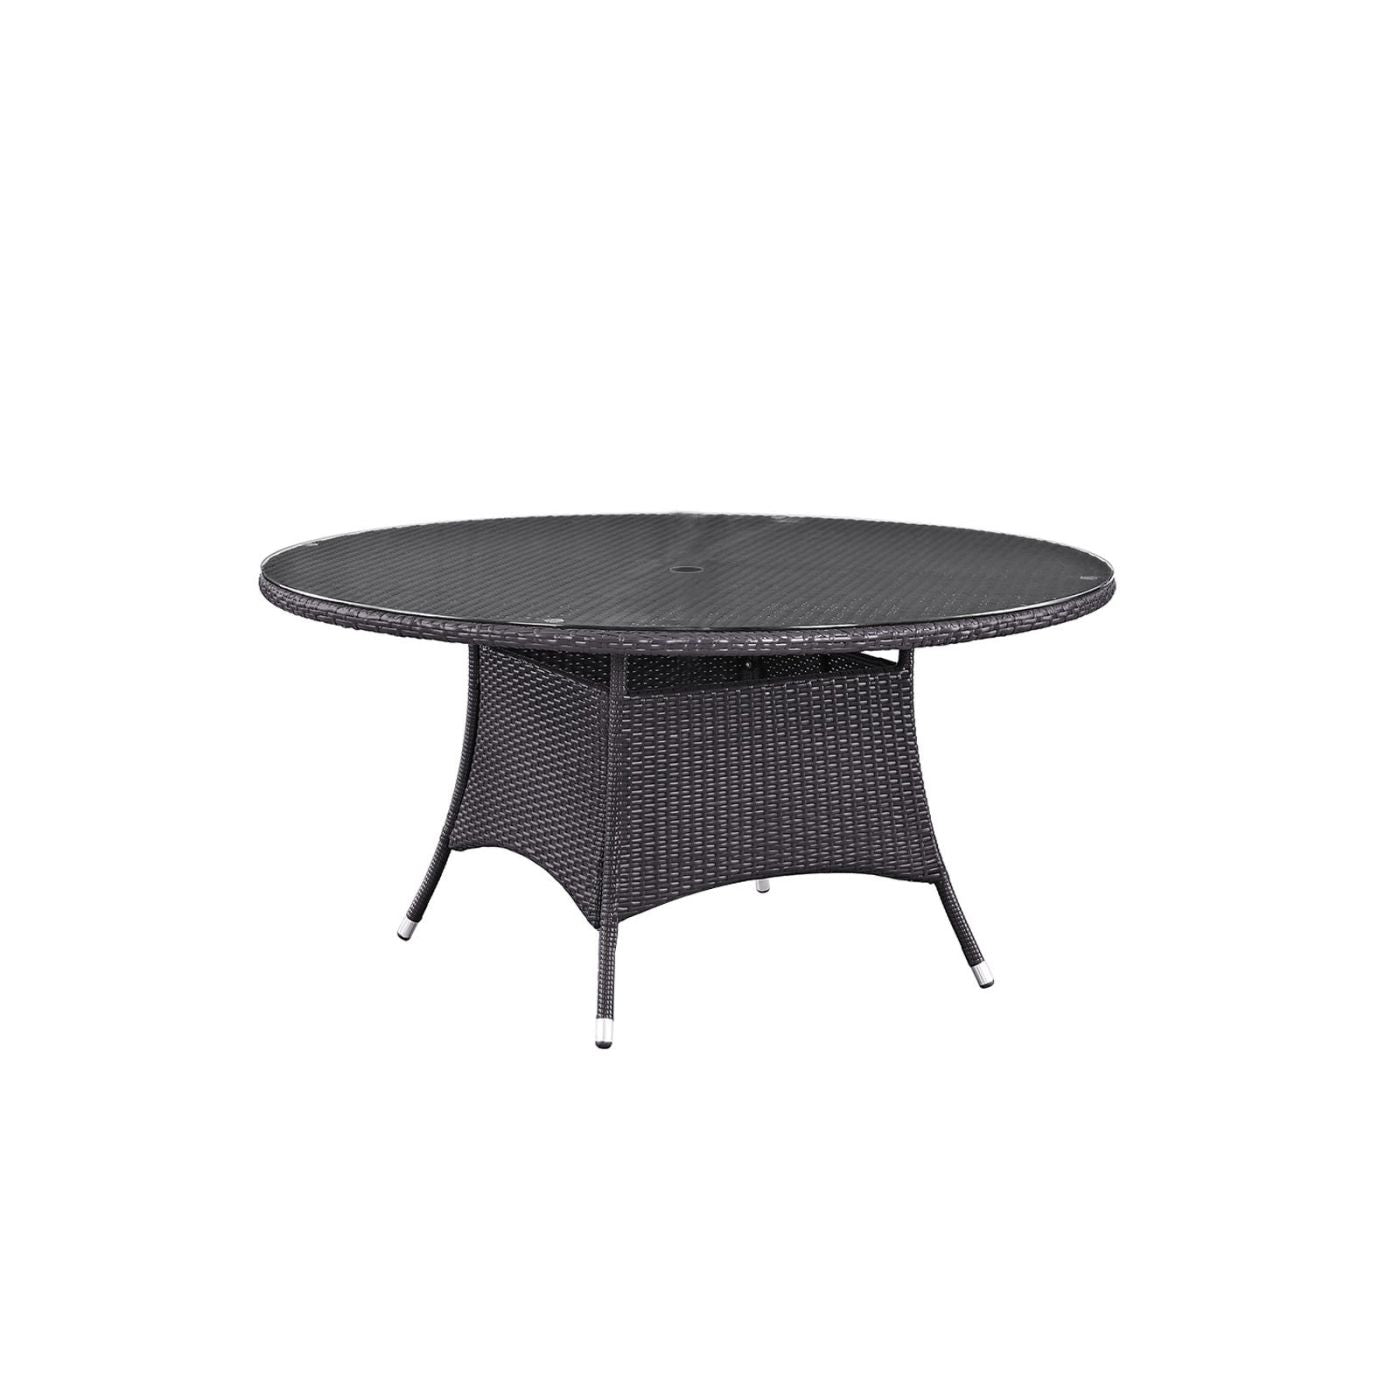 Modway Convene Square Glass Top Patio Dining Table in Espresso